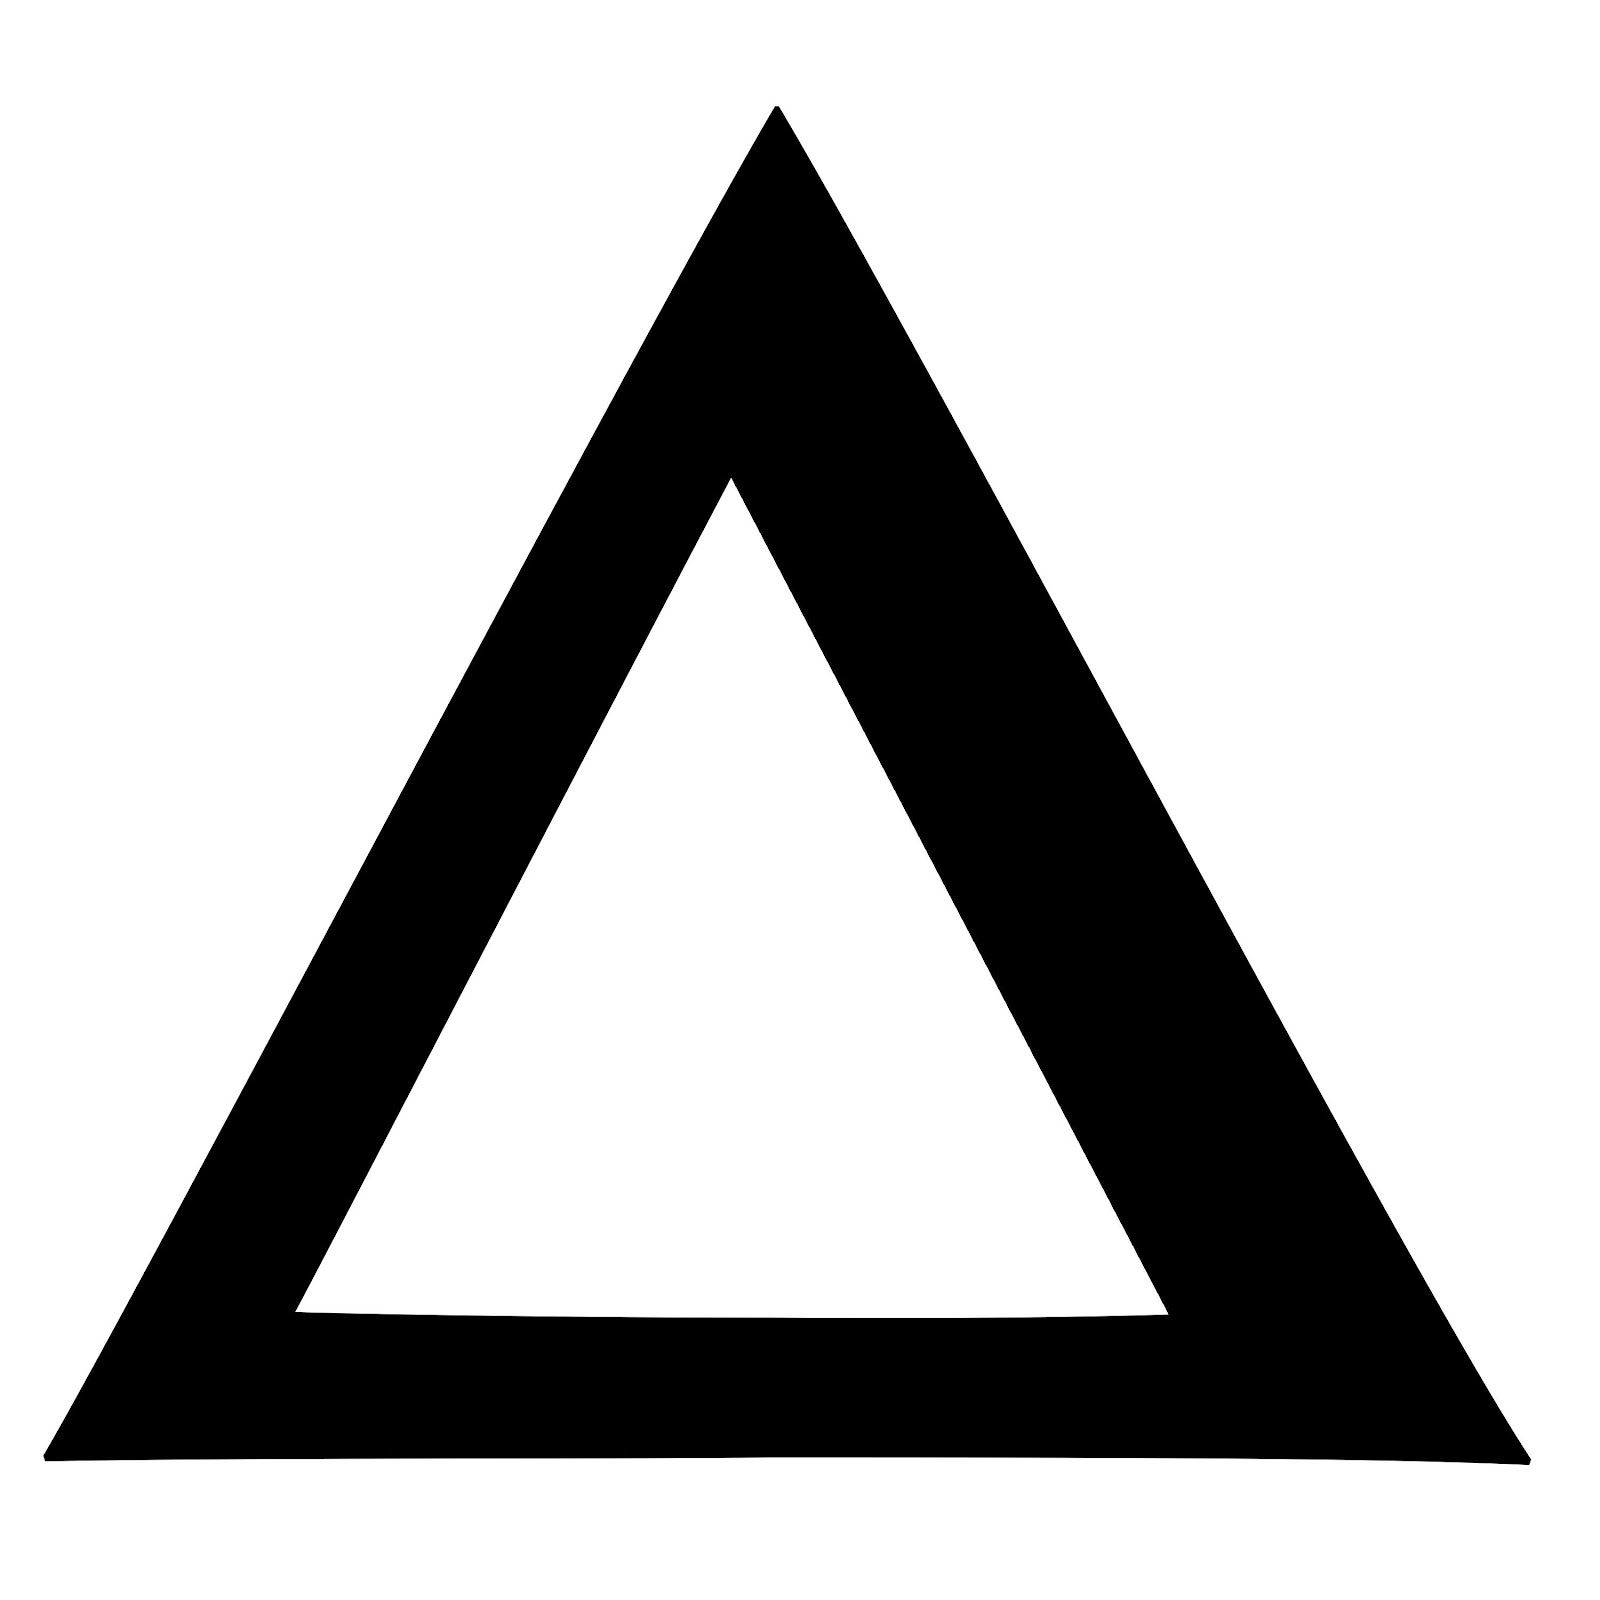 Alt j triangle mathematical symbol for change google search alt j triangle mathematical symbol for change google search buycottarizona Choice Image